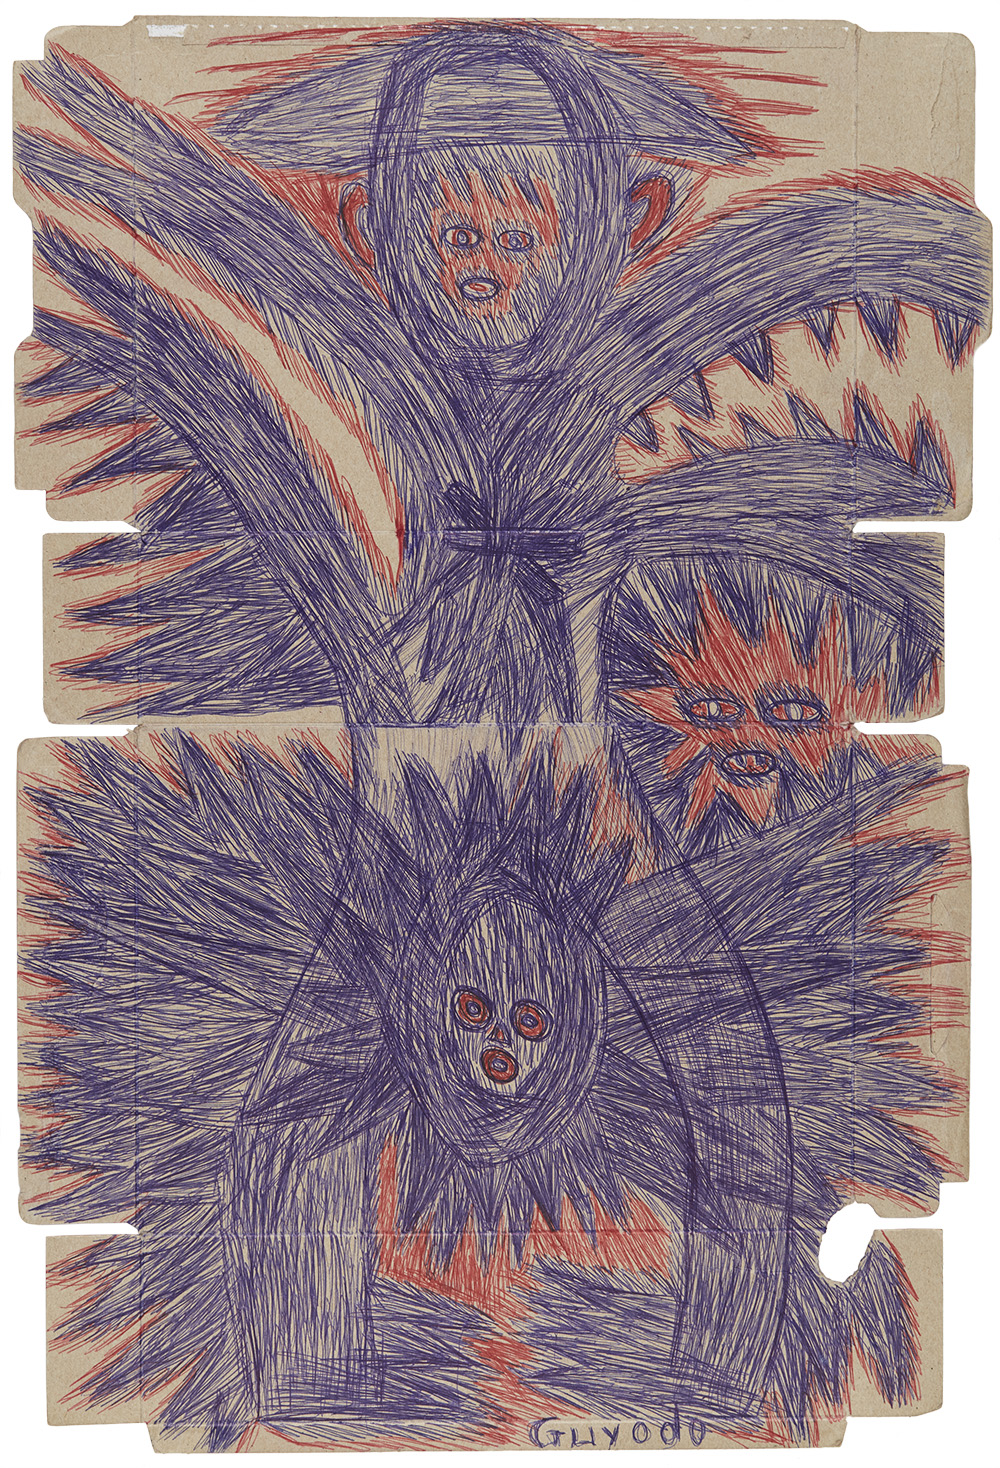 Guyodo (Frantz Jacques)  Untitled  , 2015 Ballpoint pen on recycled corn-flakes box 23.25 x 15.5 inches 59.1 x 39.4 cm Gyd 31